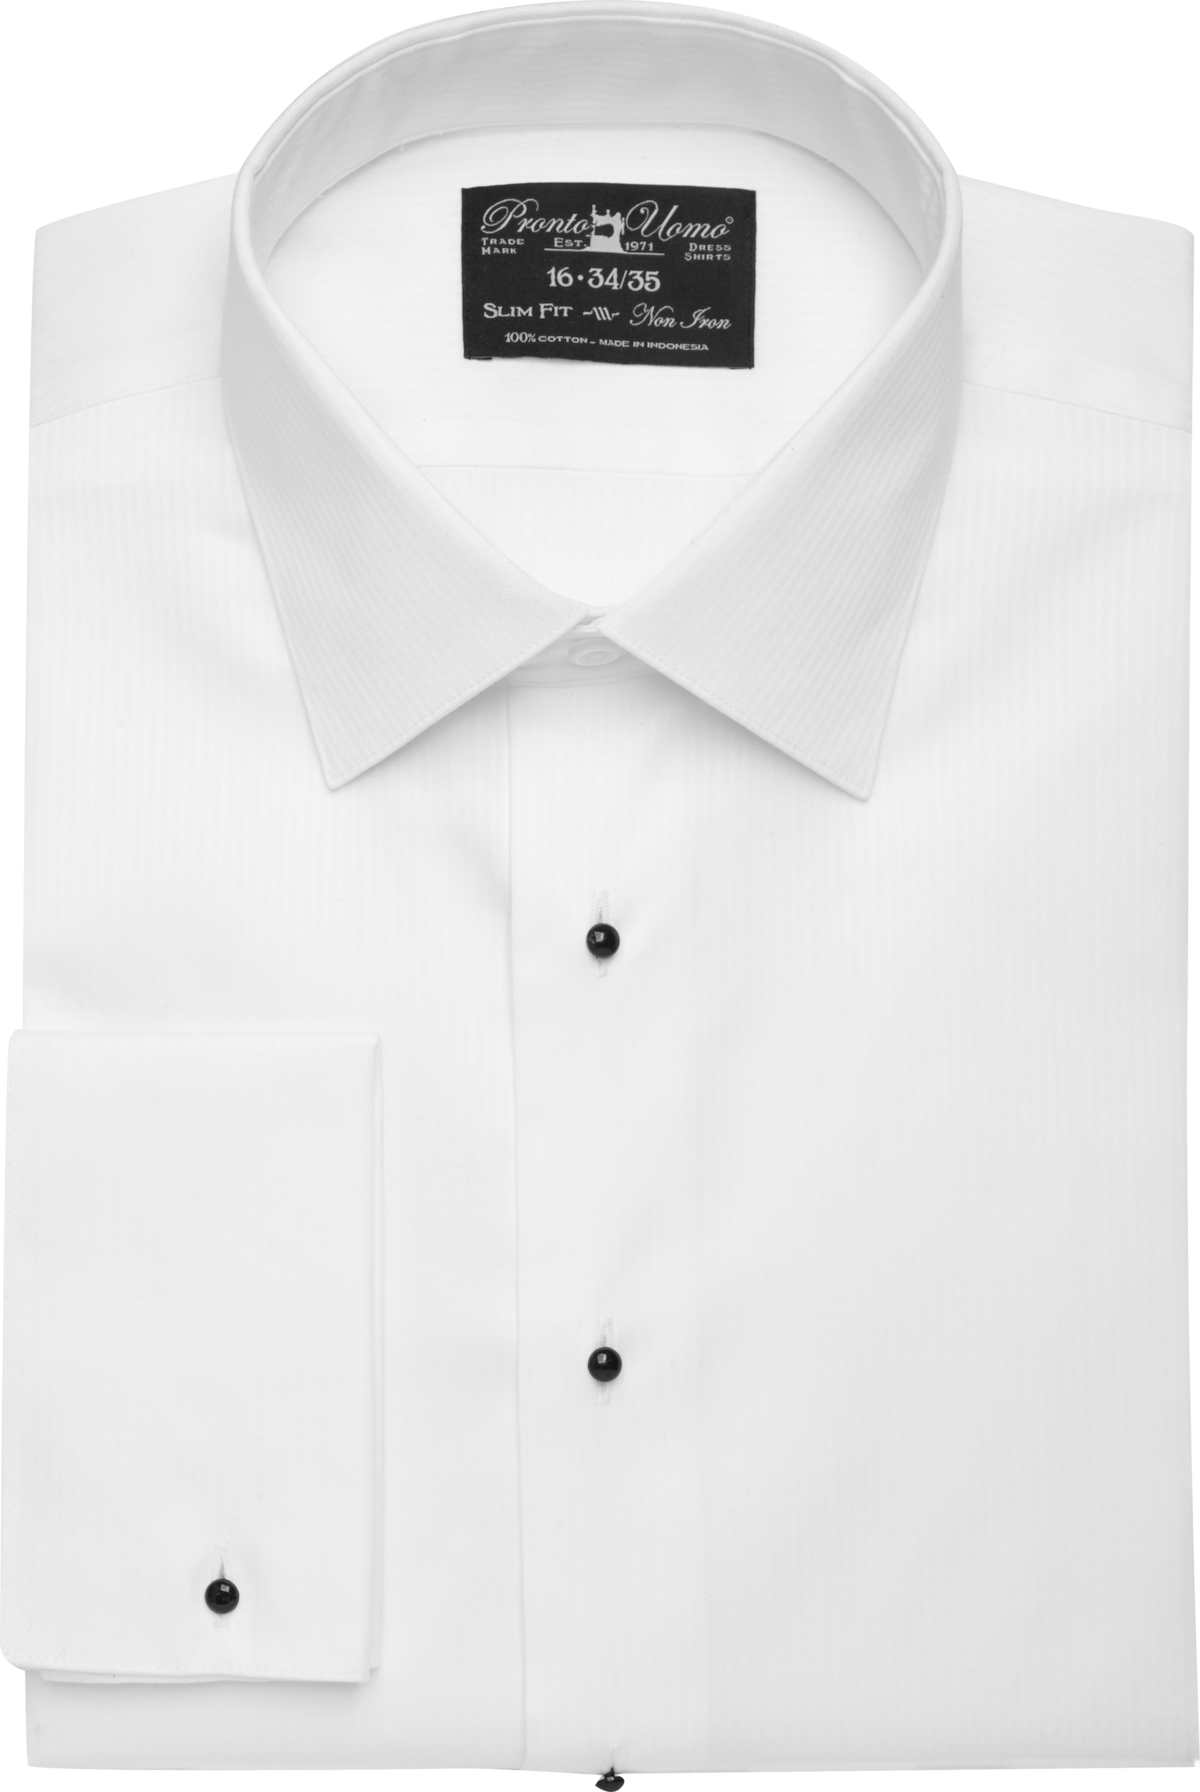 Pronto Uomo White Slim Fit Tuxedo Shirt - Men's Formal Shirts ...